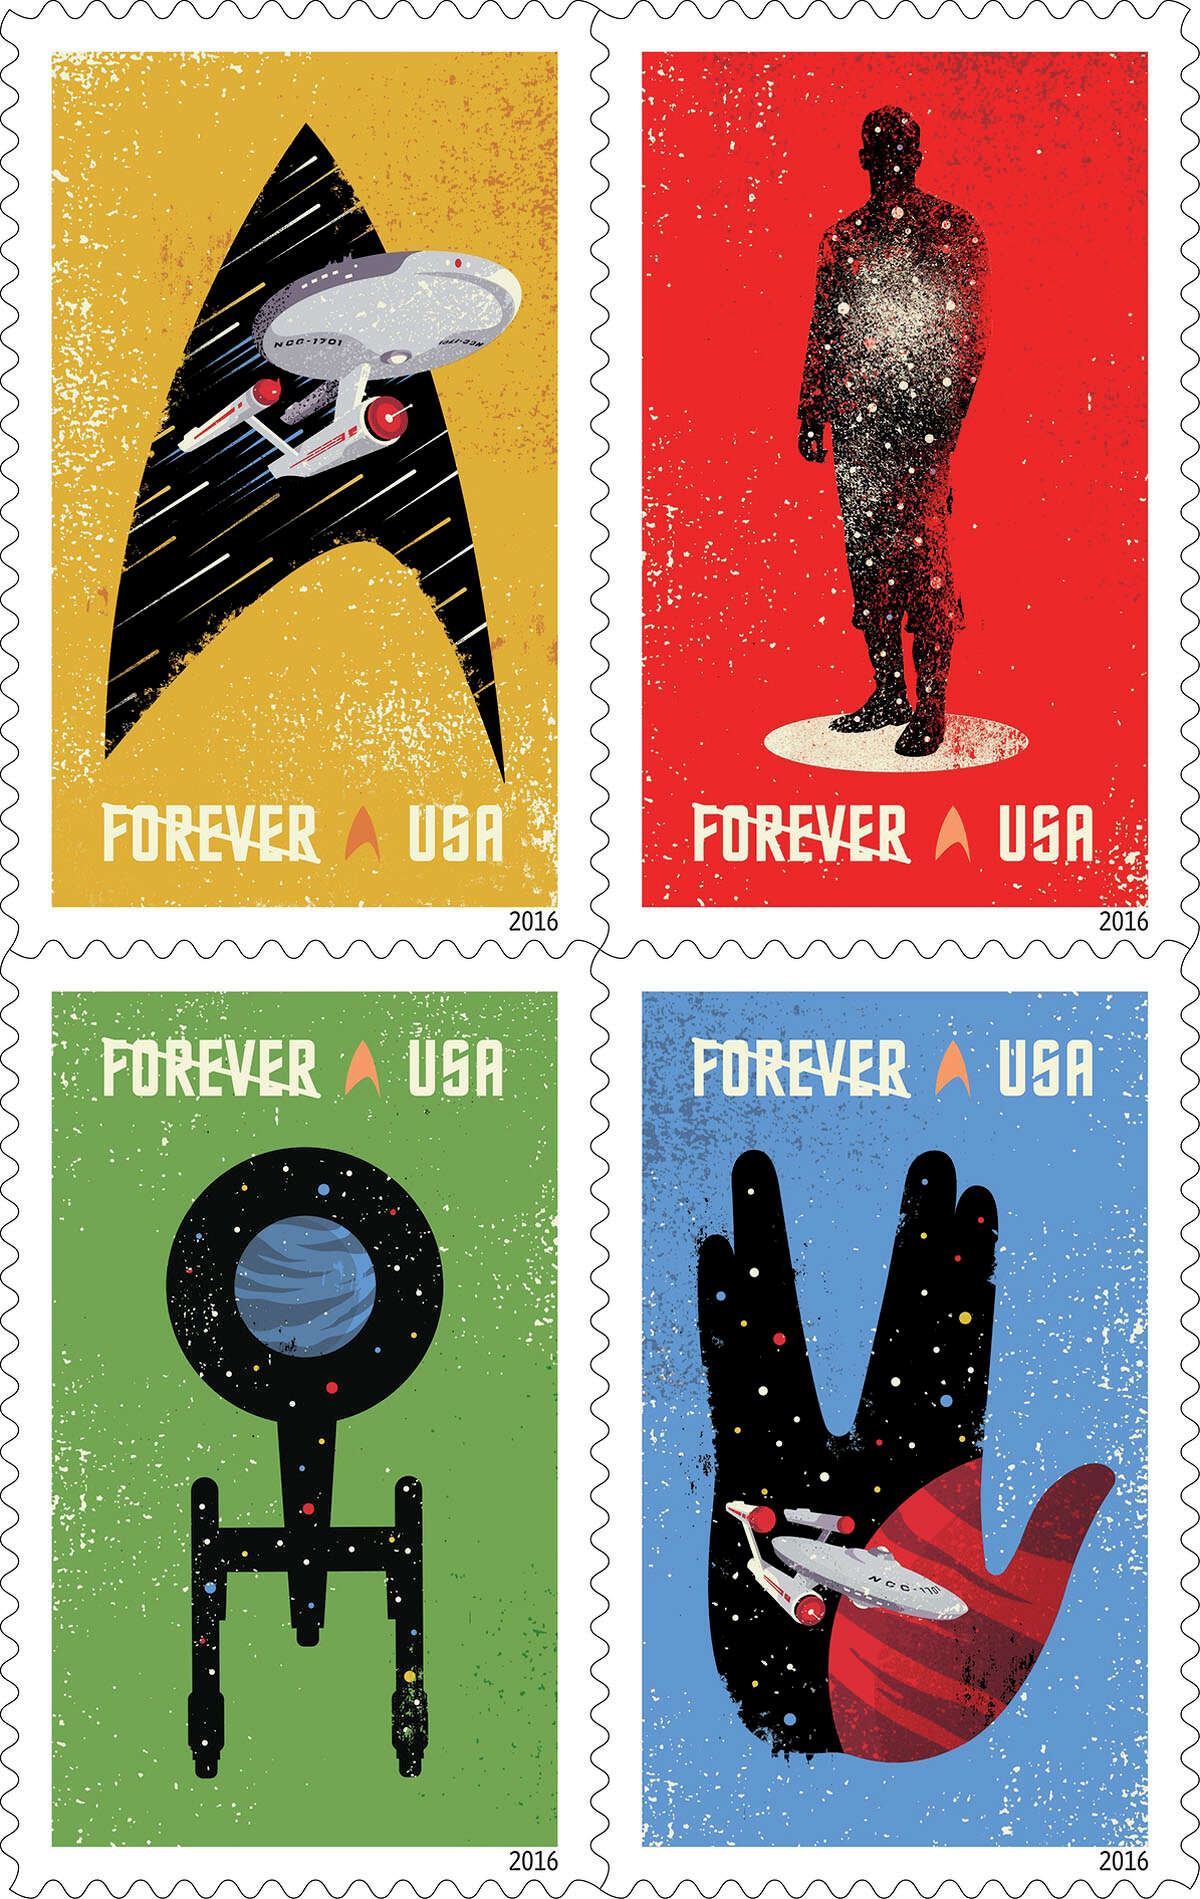 """U.S. Postal Service 2016 stamp designs Star Trek Celebrating the 50th anniversary of the television premiere, the new Star Trek Forever stamps showcase four digital illustrations inspired by classic elements of the television program: the Starship Enterprise inside the outline of a Starfleet insignia against a gold background; the silhouette of a crewman in a transporter against a red background; the silhouette of the Enterprise from above against a green background; and, the Enterprise inside the outline of the Vulcan statue (Spock's iconic hand gesture) against a blue background. The words """"SPACE... THE FINAL FRONTIER,"""" from Captain Kirk's famous voice-over appear beneath the stamps against a background of stars. The stamps were designed by Heads of State under the art direction of Antonio Alcalá.(© Copyright 2016 USPS)"""